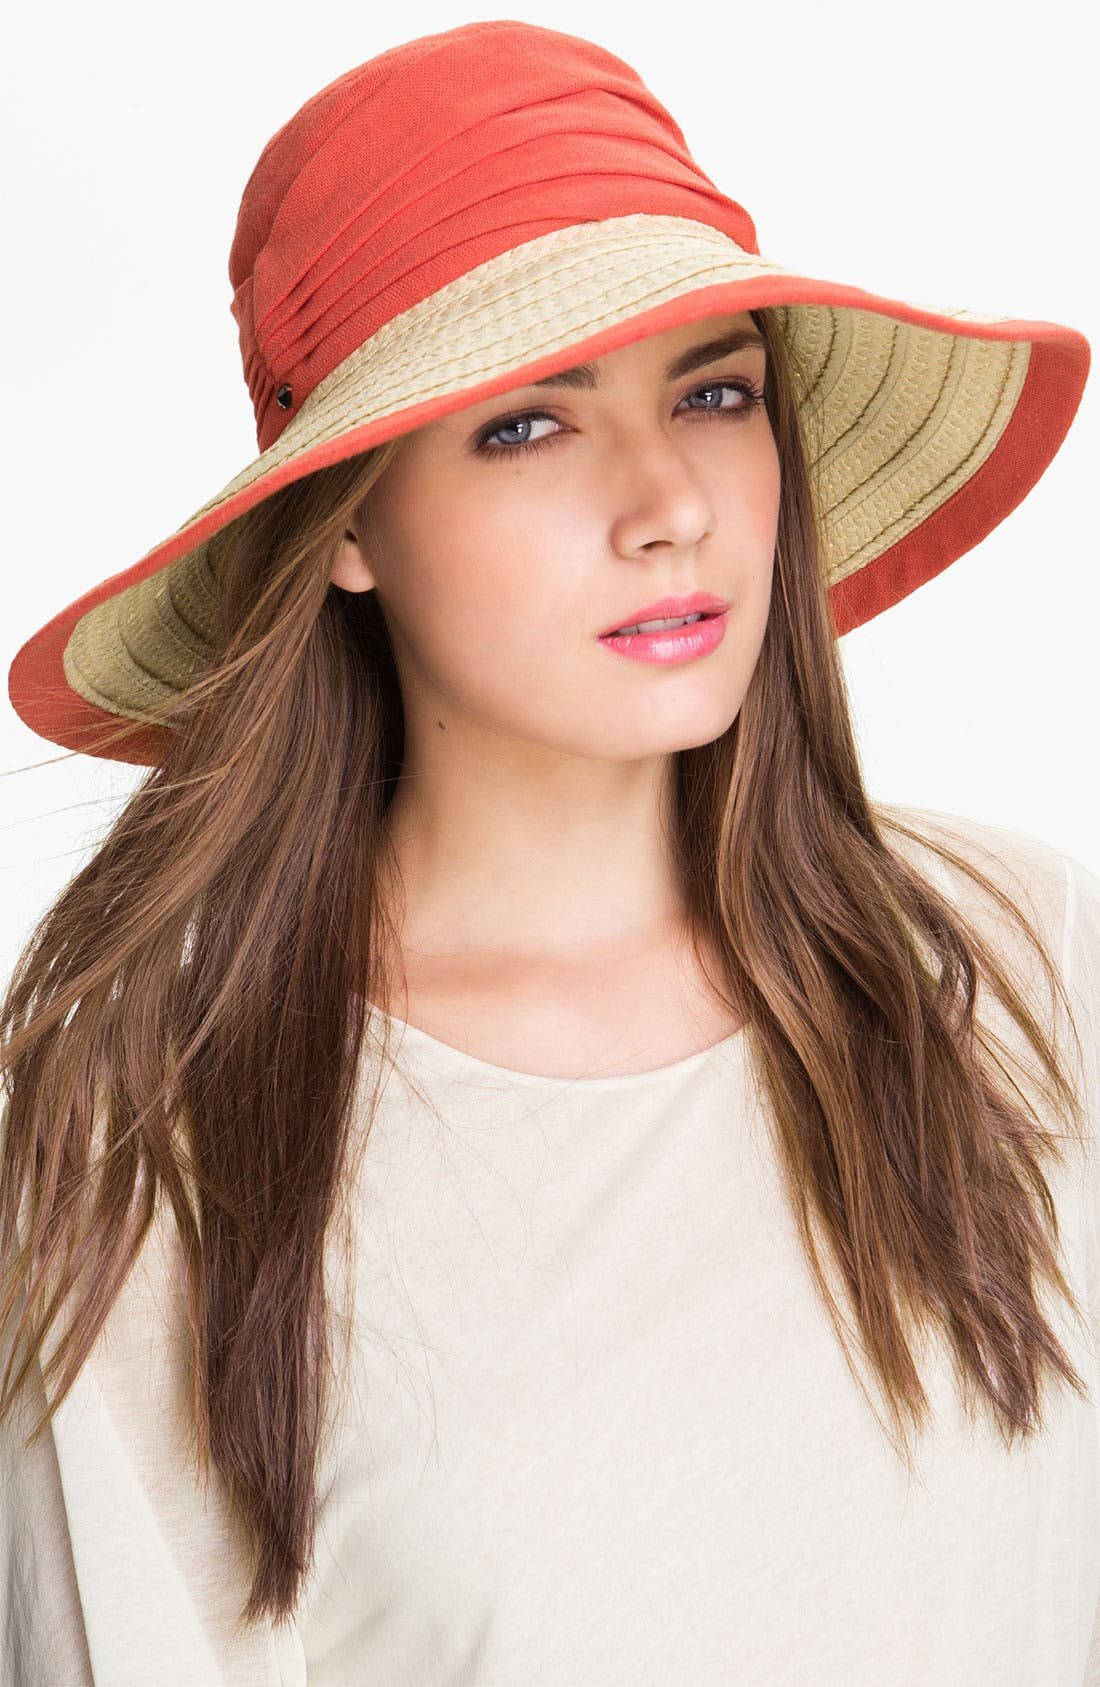 Alternate Image 1 Selected - Nordstrom Linen Crown Sun Hat